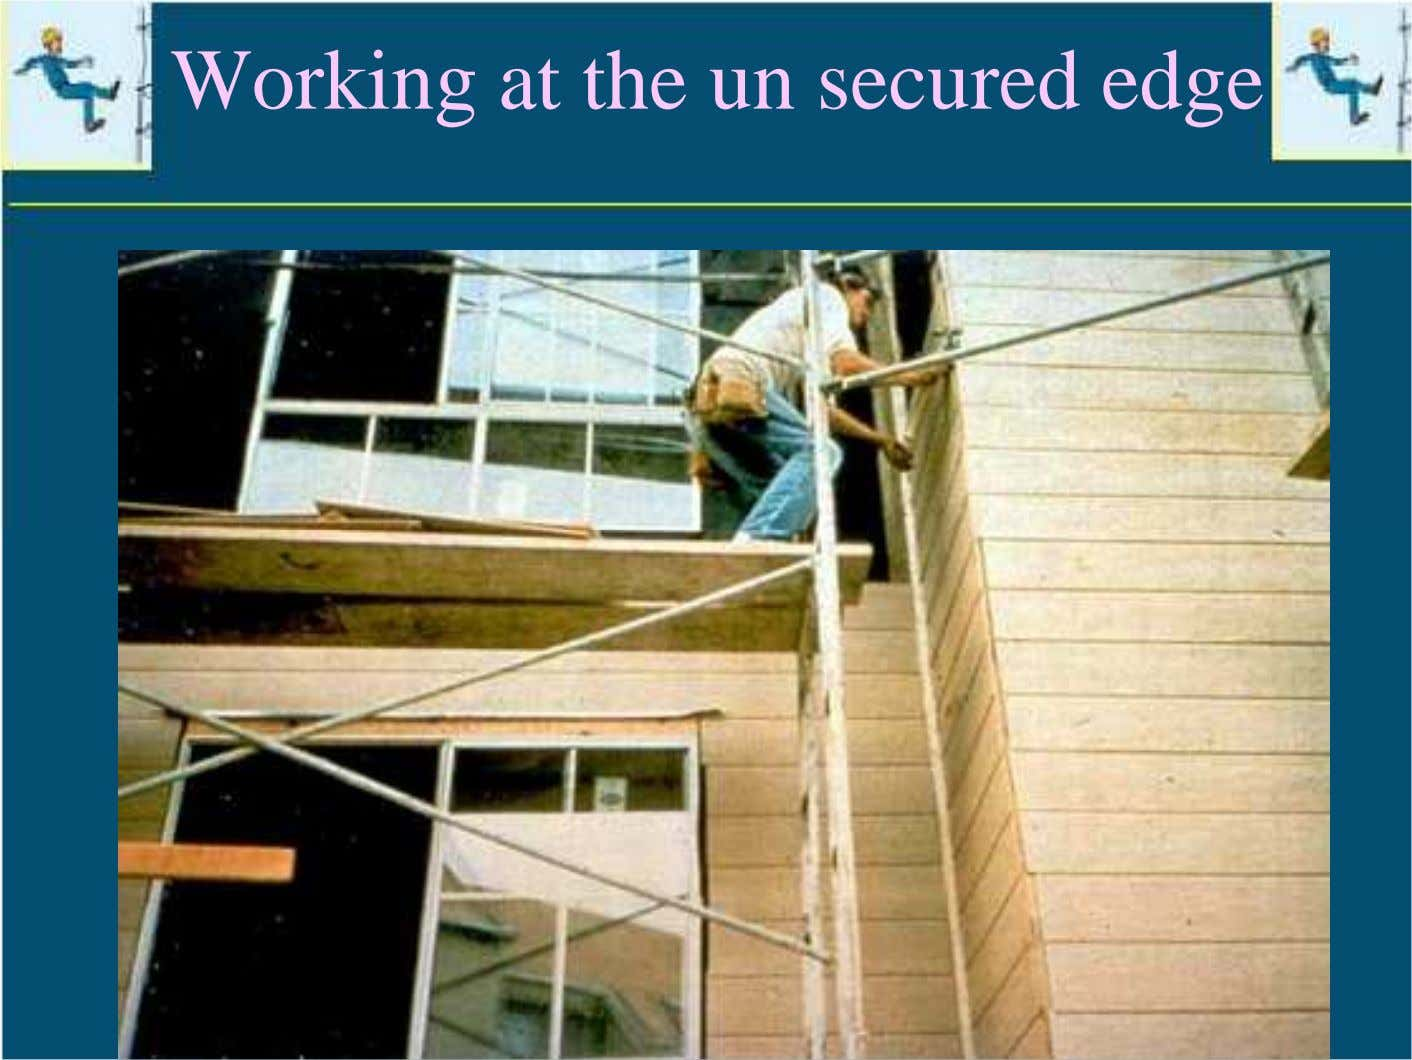 Working at the un secured edge